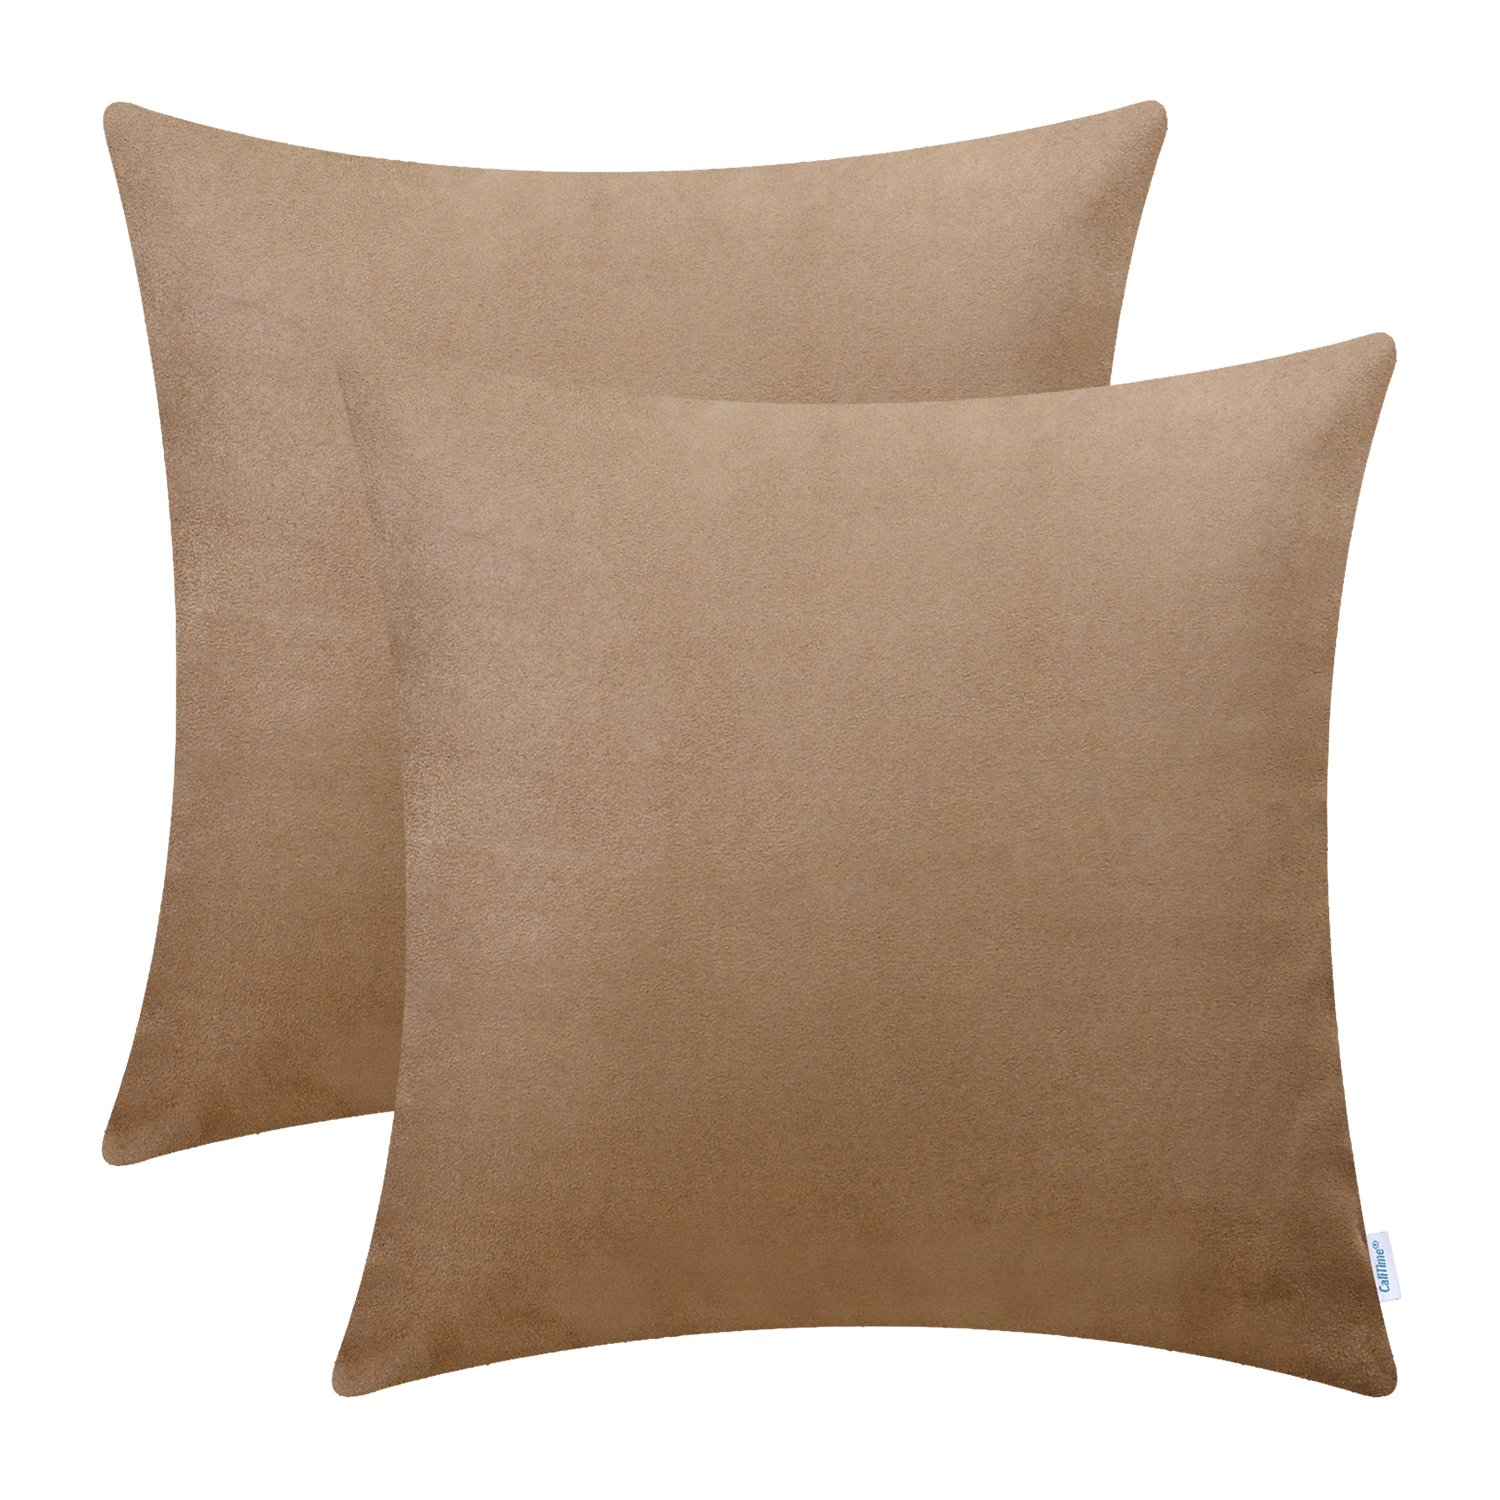 CaliTime Pack of 2 Cozy Throw Pillow Covers Cases for Couch Bed Sofa Super Soft Faux Suede Solid Color Both Sides 20 X 20 Inches Camel